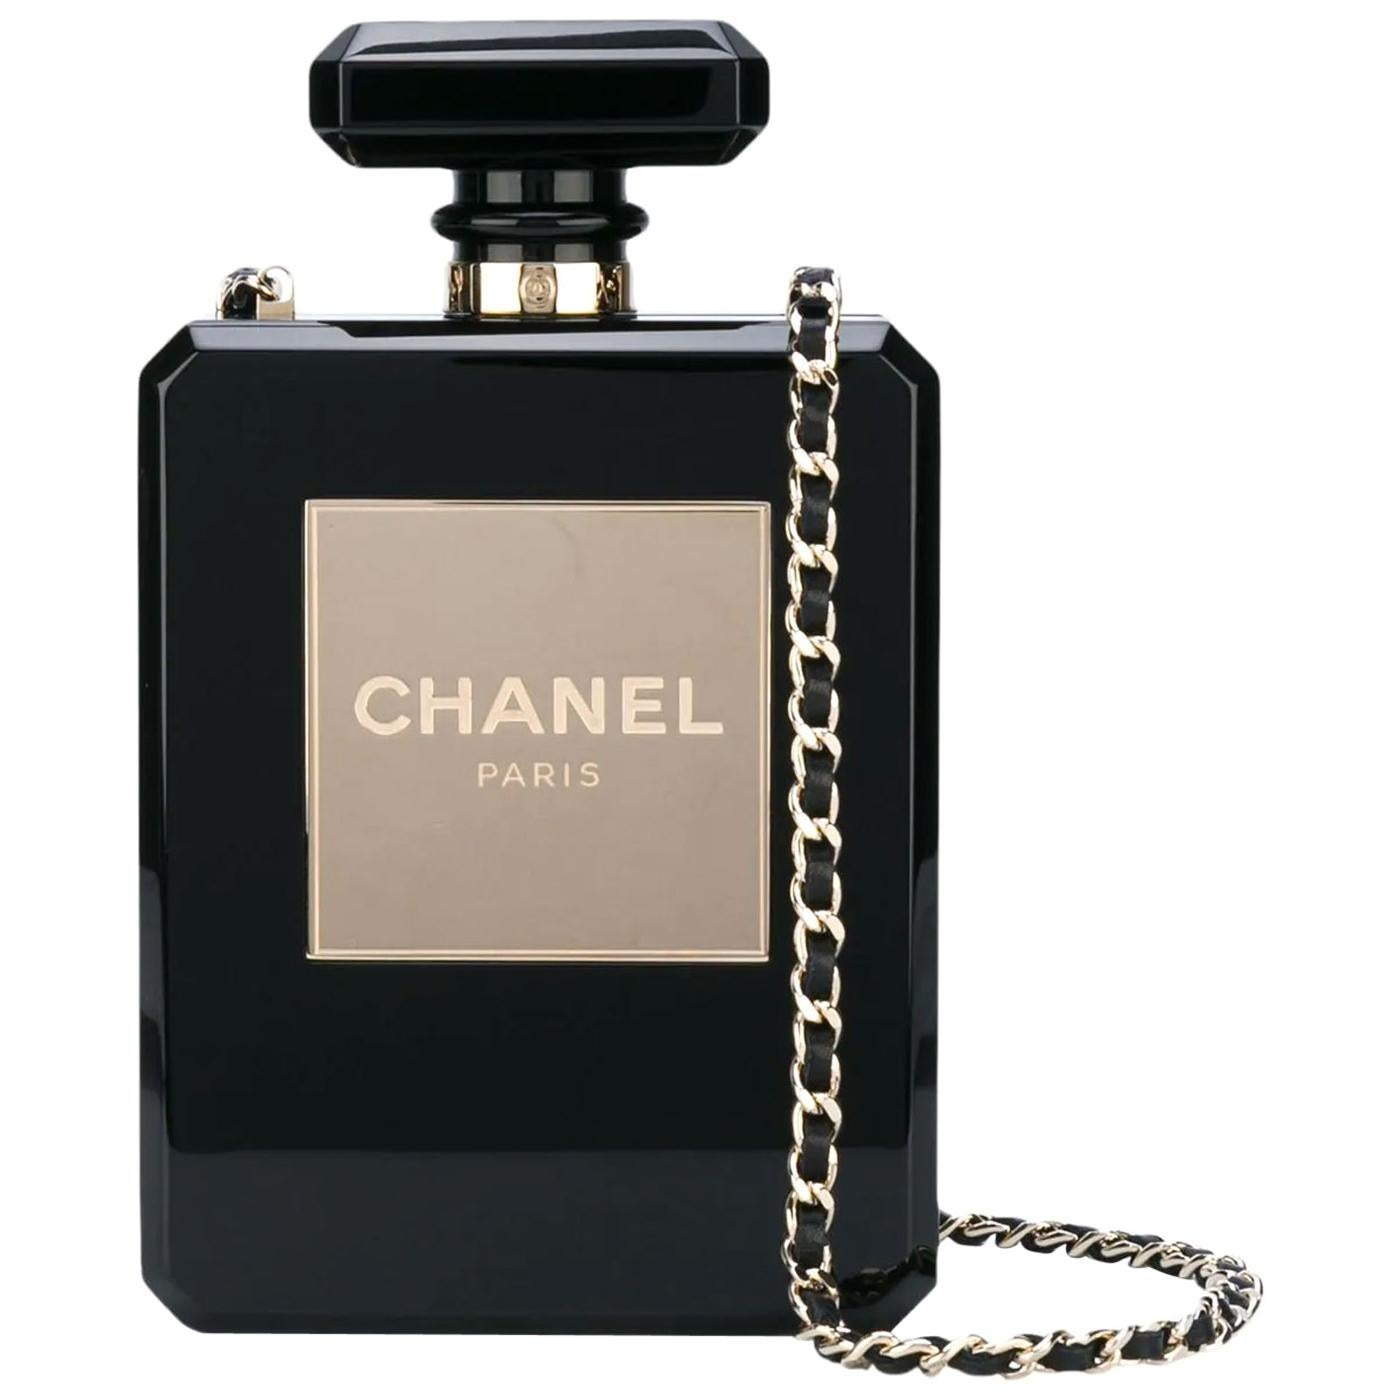 A Chanel handbag shaped like a perfume bottle, offered by House of Carver